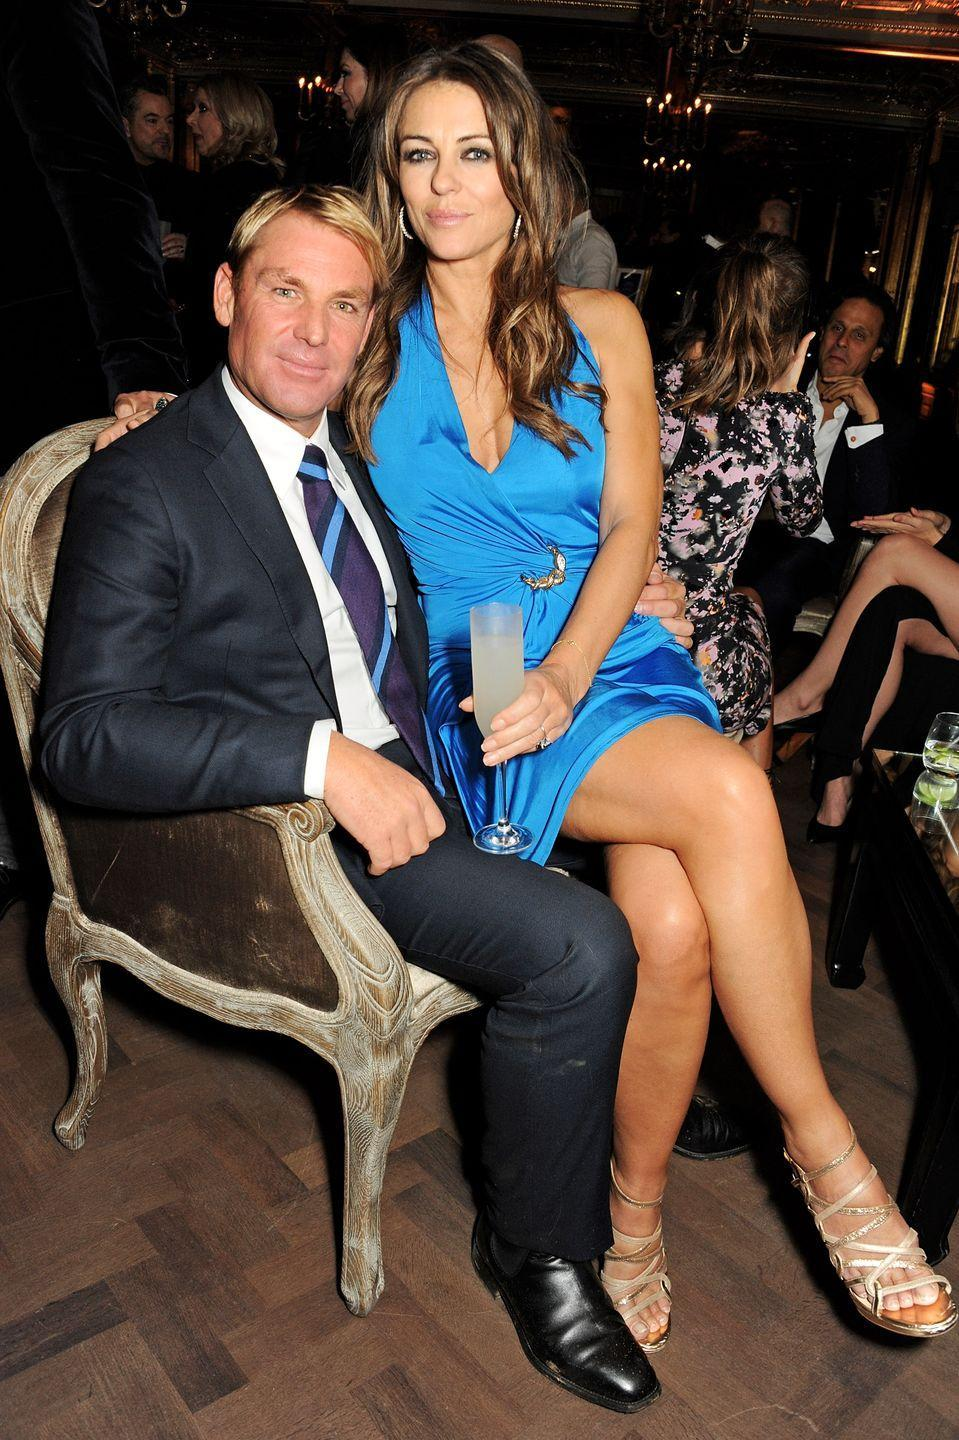 <p>The pair got engaged soon after, but ultimately called it quits at the end of 2013. </p>